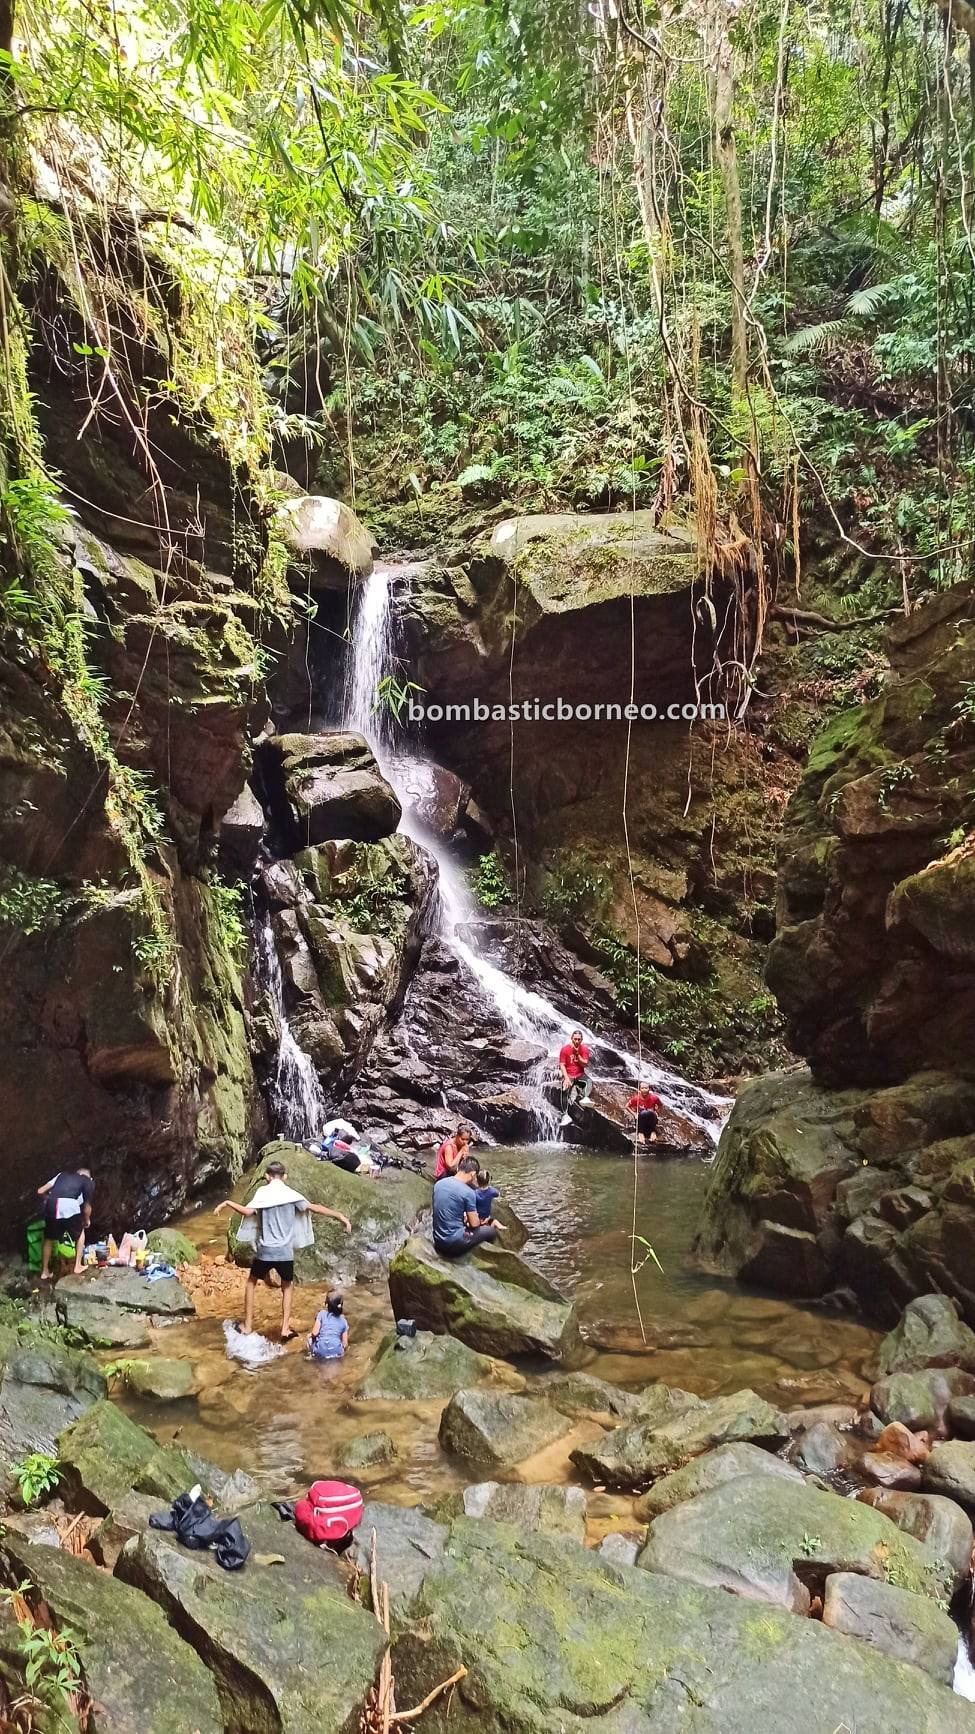 Satow waterfall, Kampung Bobak, nature, outdoor, trekking, picnic, Bau, Singai, Kuching, Malaysia, Tourism, travel local, Trans Borneo, 砂拉越古晋石隆门, 瀑布旅游景点